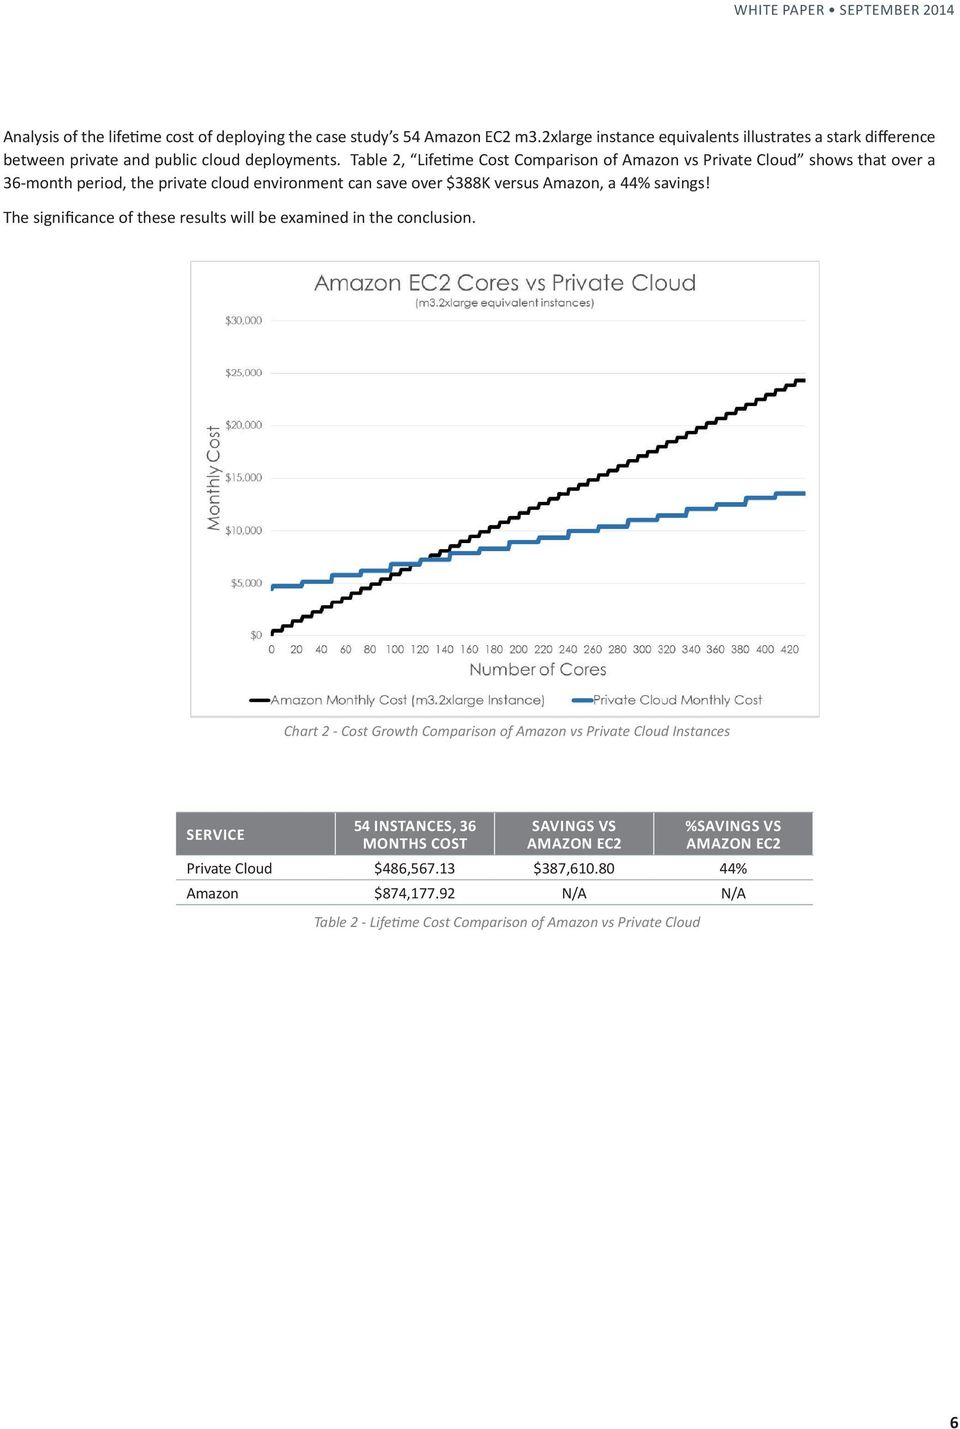 Table 2, Lifetime Cost Comparison of Amazon vs Private Cloud shows that over a 36-month period, the private cloud environment can save over $388K versus Amazon, a 44% savings!